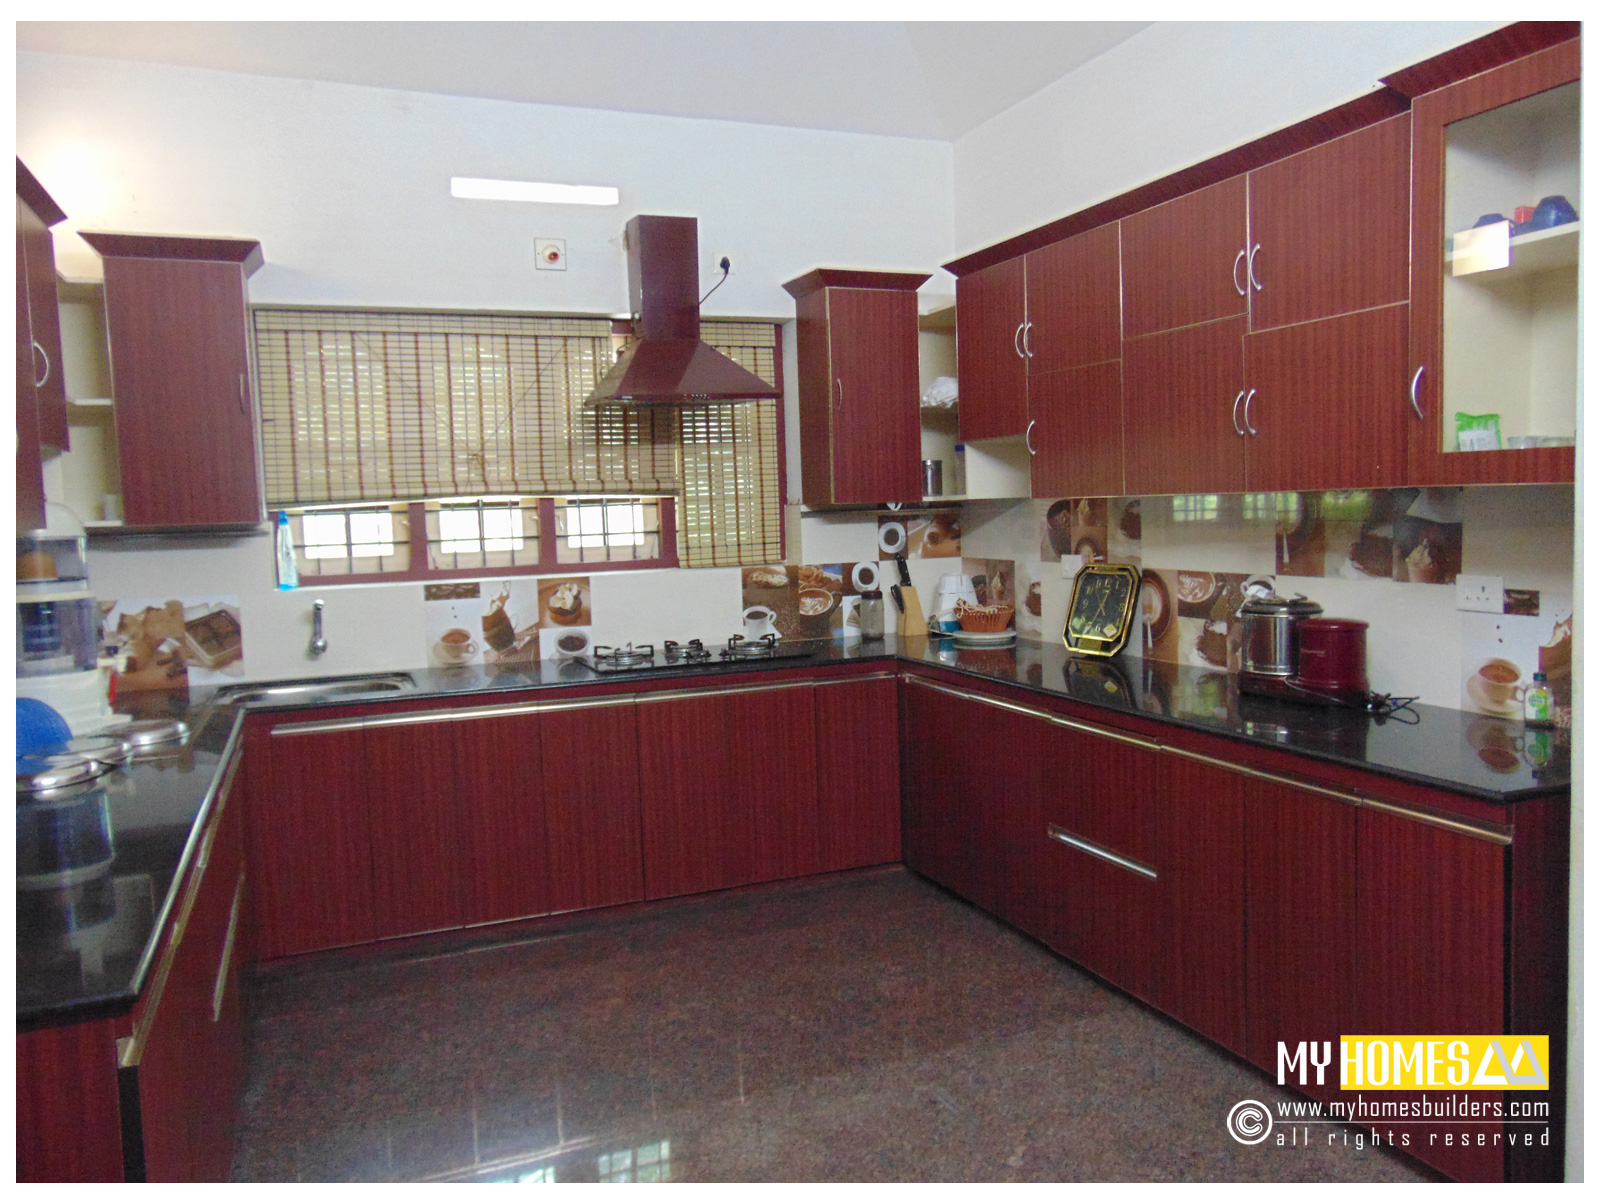 Budget house kerala home designers builder in thrissur india - Home kitchen design ideas ...